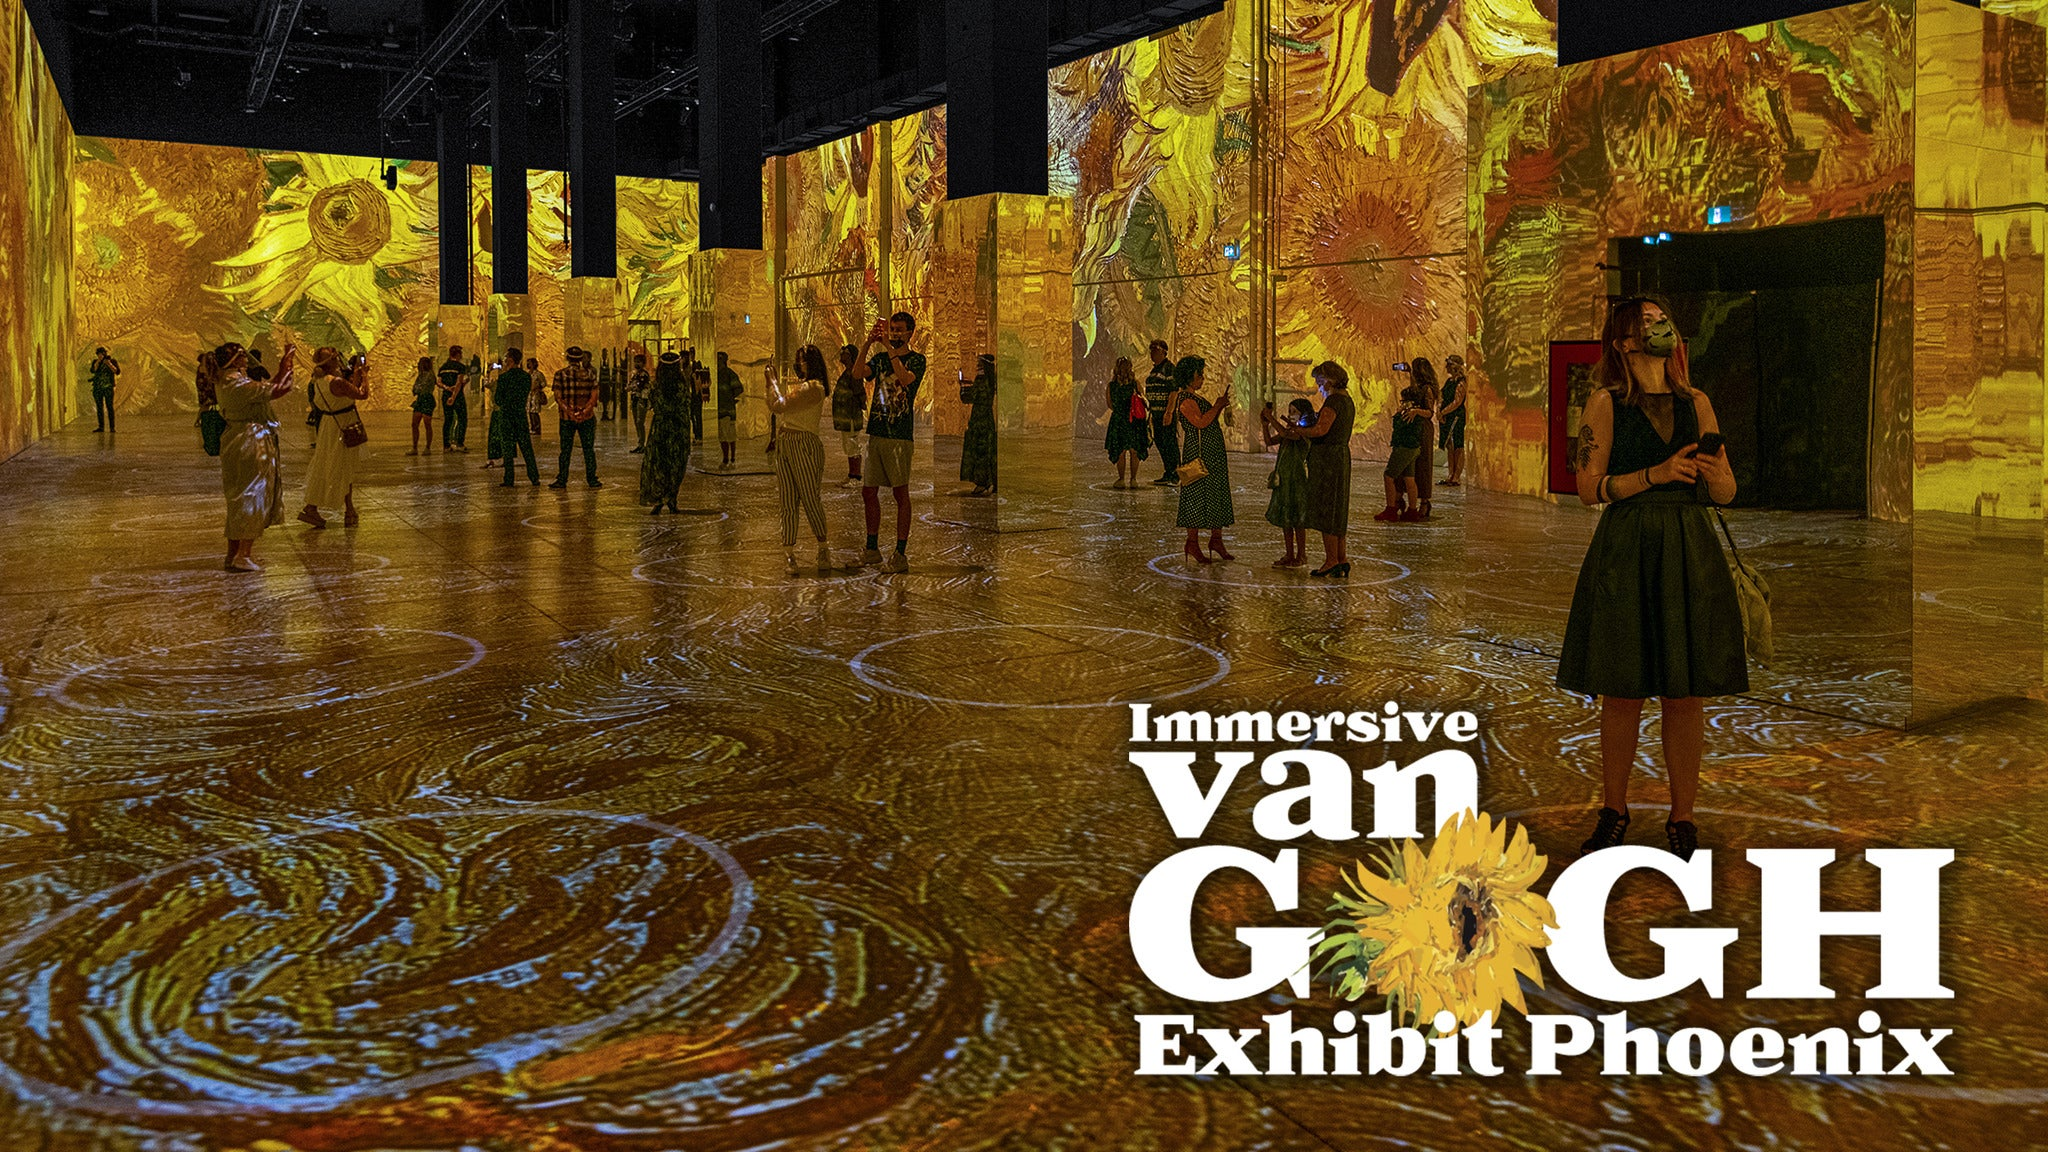 Immersive Van Gogh (Off-Peak) at Secret Location - Phoenix - Phoenix, AZ 85004